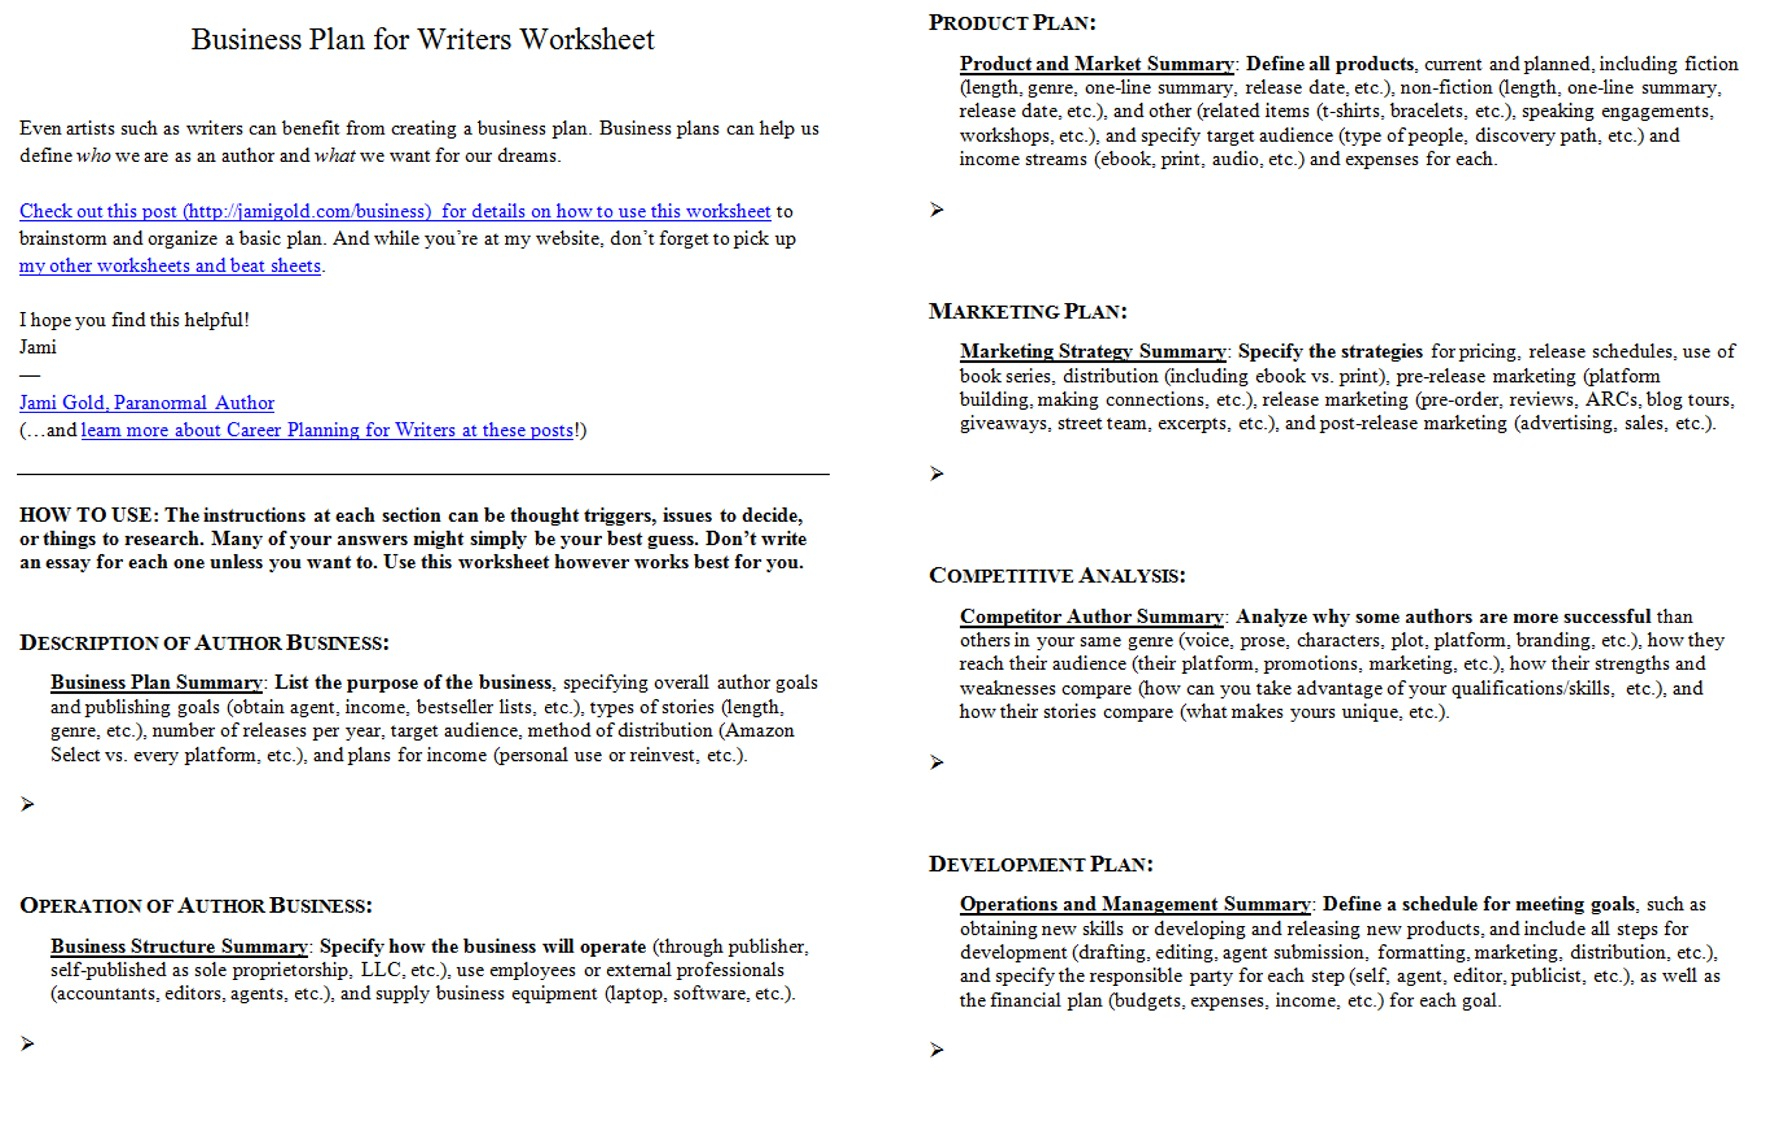 Aldiablosus  Winning Worksheets For Writers  Jami Gold Paranormal Author With Excellent Screen Shot Of Both Pages Of The Business Plan For Writers Worksheet With Attractive Year  Writing Worksheets Also Punctuation Worksheets Grade  In Addition Free Fifth Grade Reading Worksheets And Shapes Patterns Worksheets As Well As Finding Missing Angles In A Triangle Worksheet Additionally Heredity Traits Worksheets From Jamigoldcom With Aldiablosus  Excellent Worksheets For Writers  Jami Gold Paranormal Author With Attractive Screen Shot Of Both Pages Of The Business Plan For Writers Worksheet And Winning Year  Writing Worksheets Also Punctuation Worksheets Grade  In Addition Free Fifth Grade Reading Worksheets From Jamigoldcom